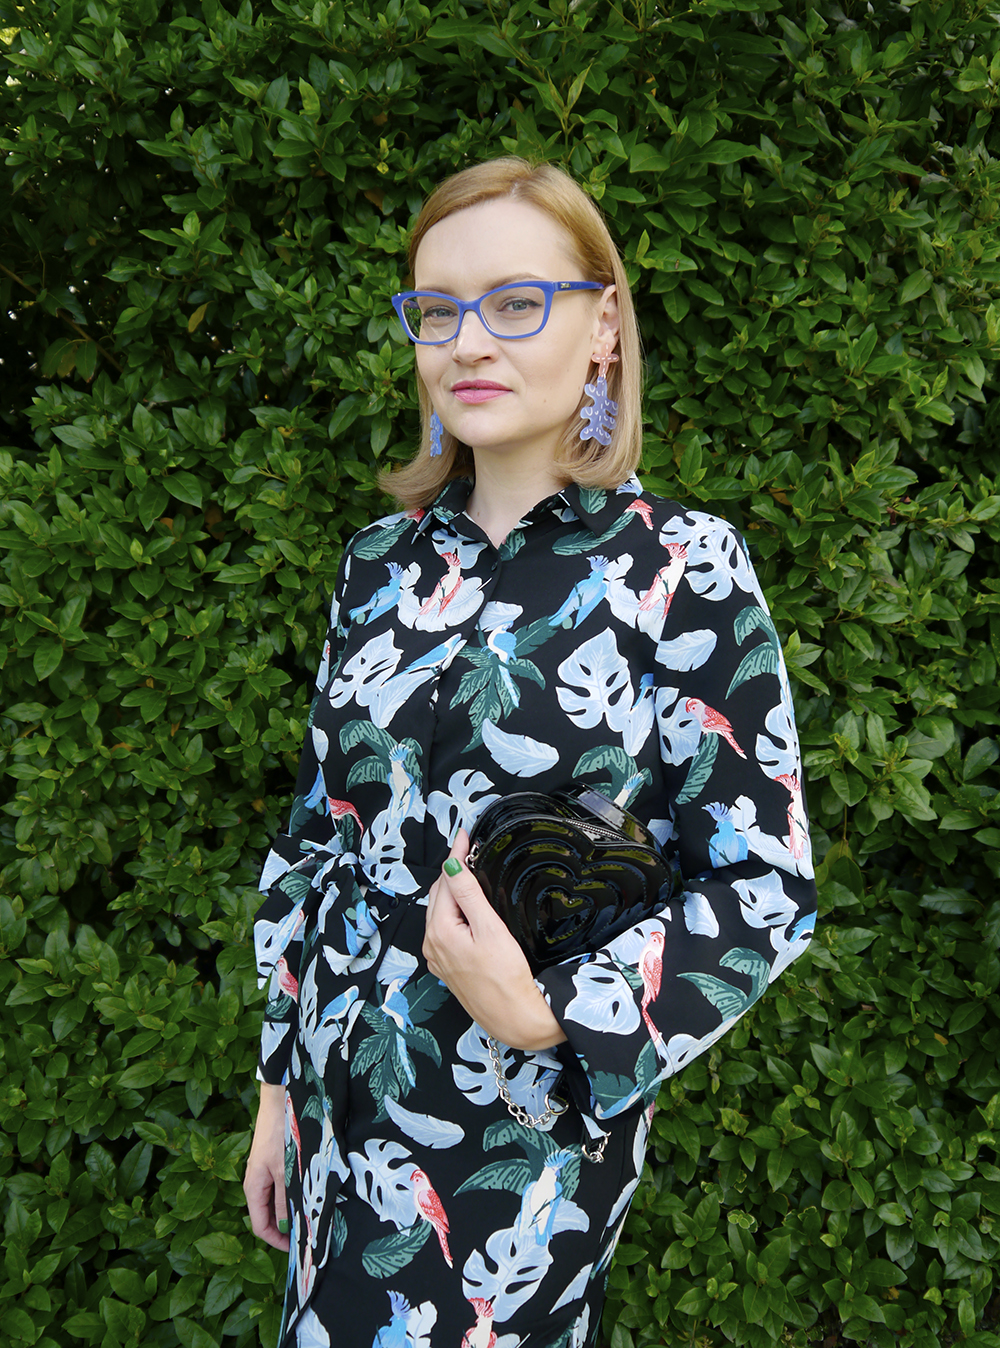 Fashion blogger Wardrobe Conversations matches earrings and glasses